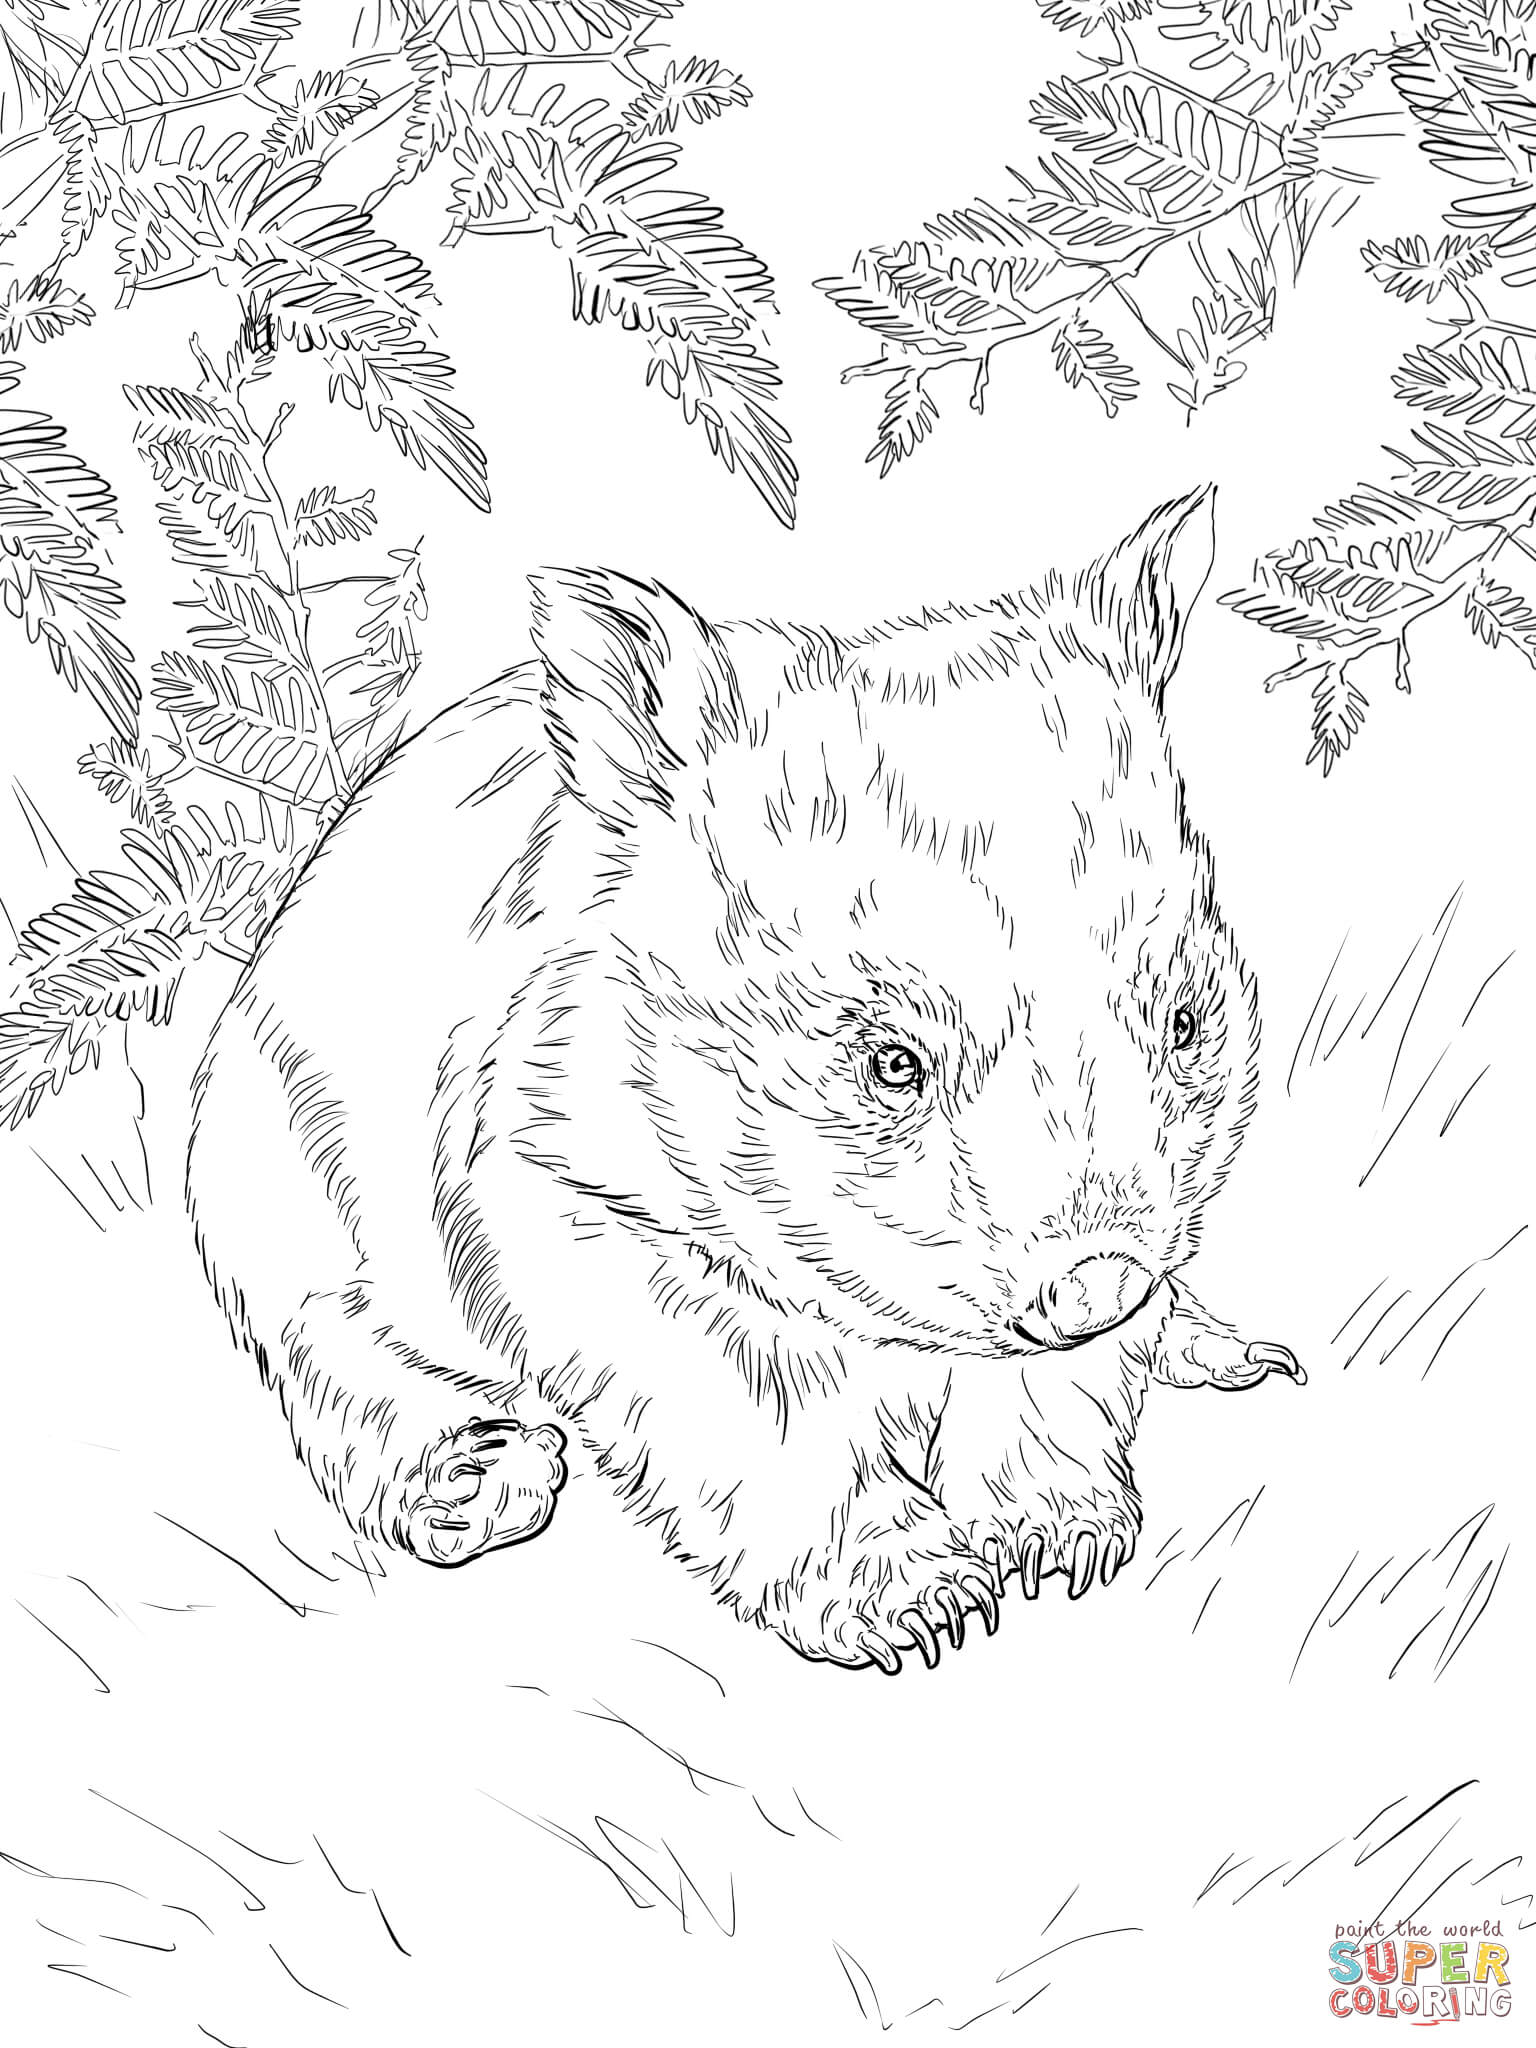 wombat colouring pages wombat coloring page animals town animals color sheet pages colouring wombat